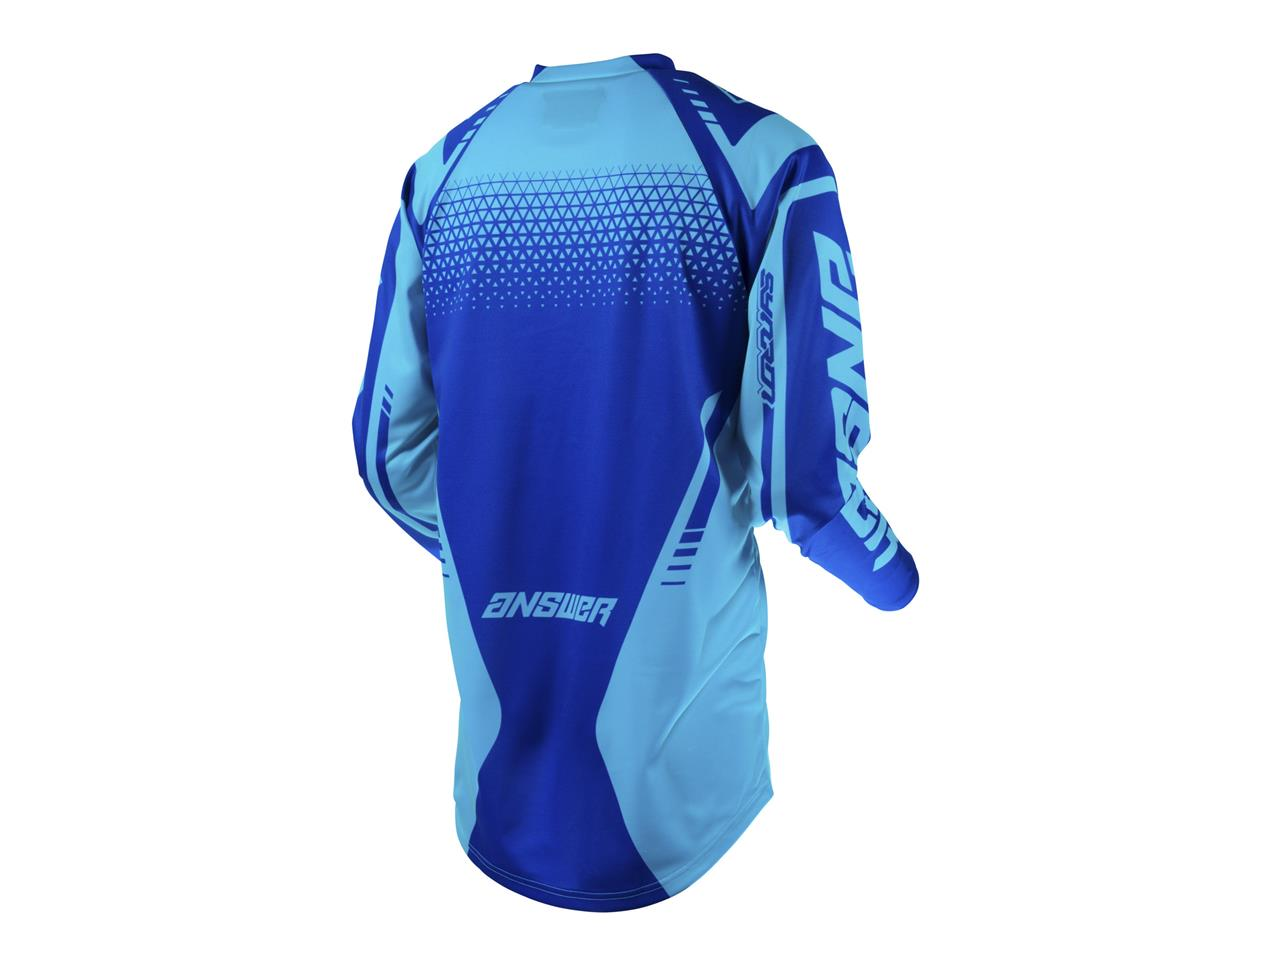 Maillot answer syncron drift astana reflex blue 2